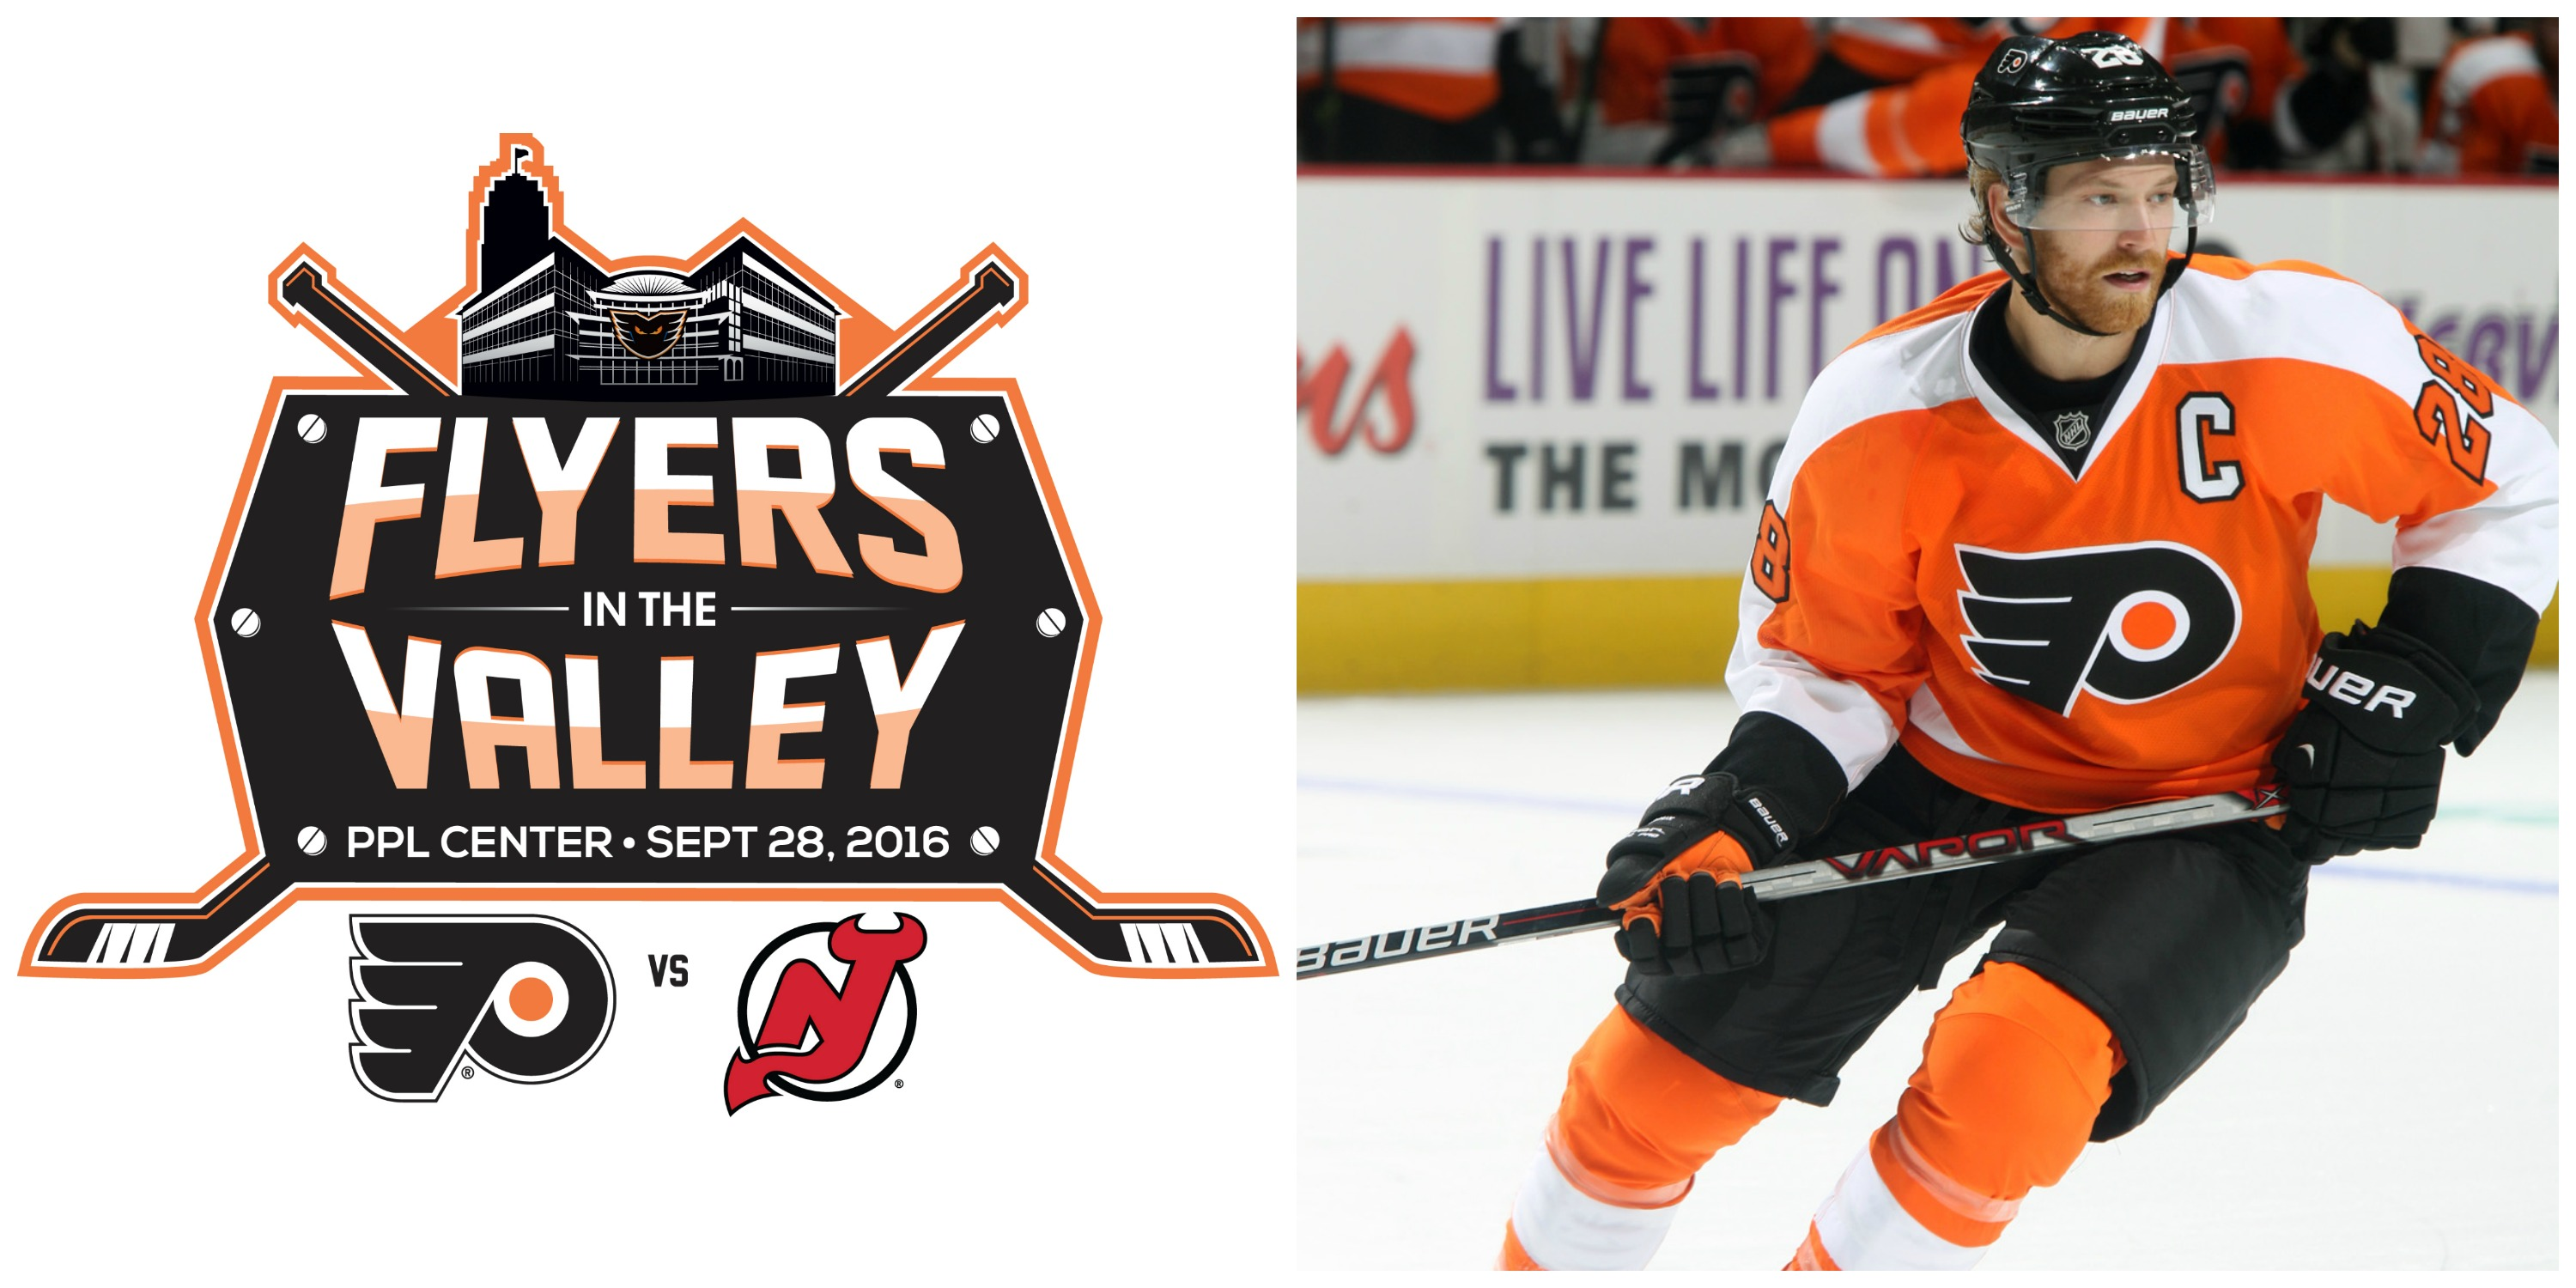 NHL Flyers vs. Devils at PPL Center September 28th